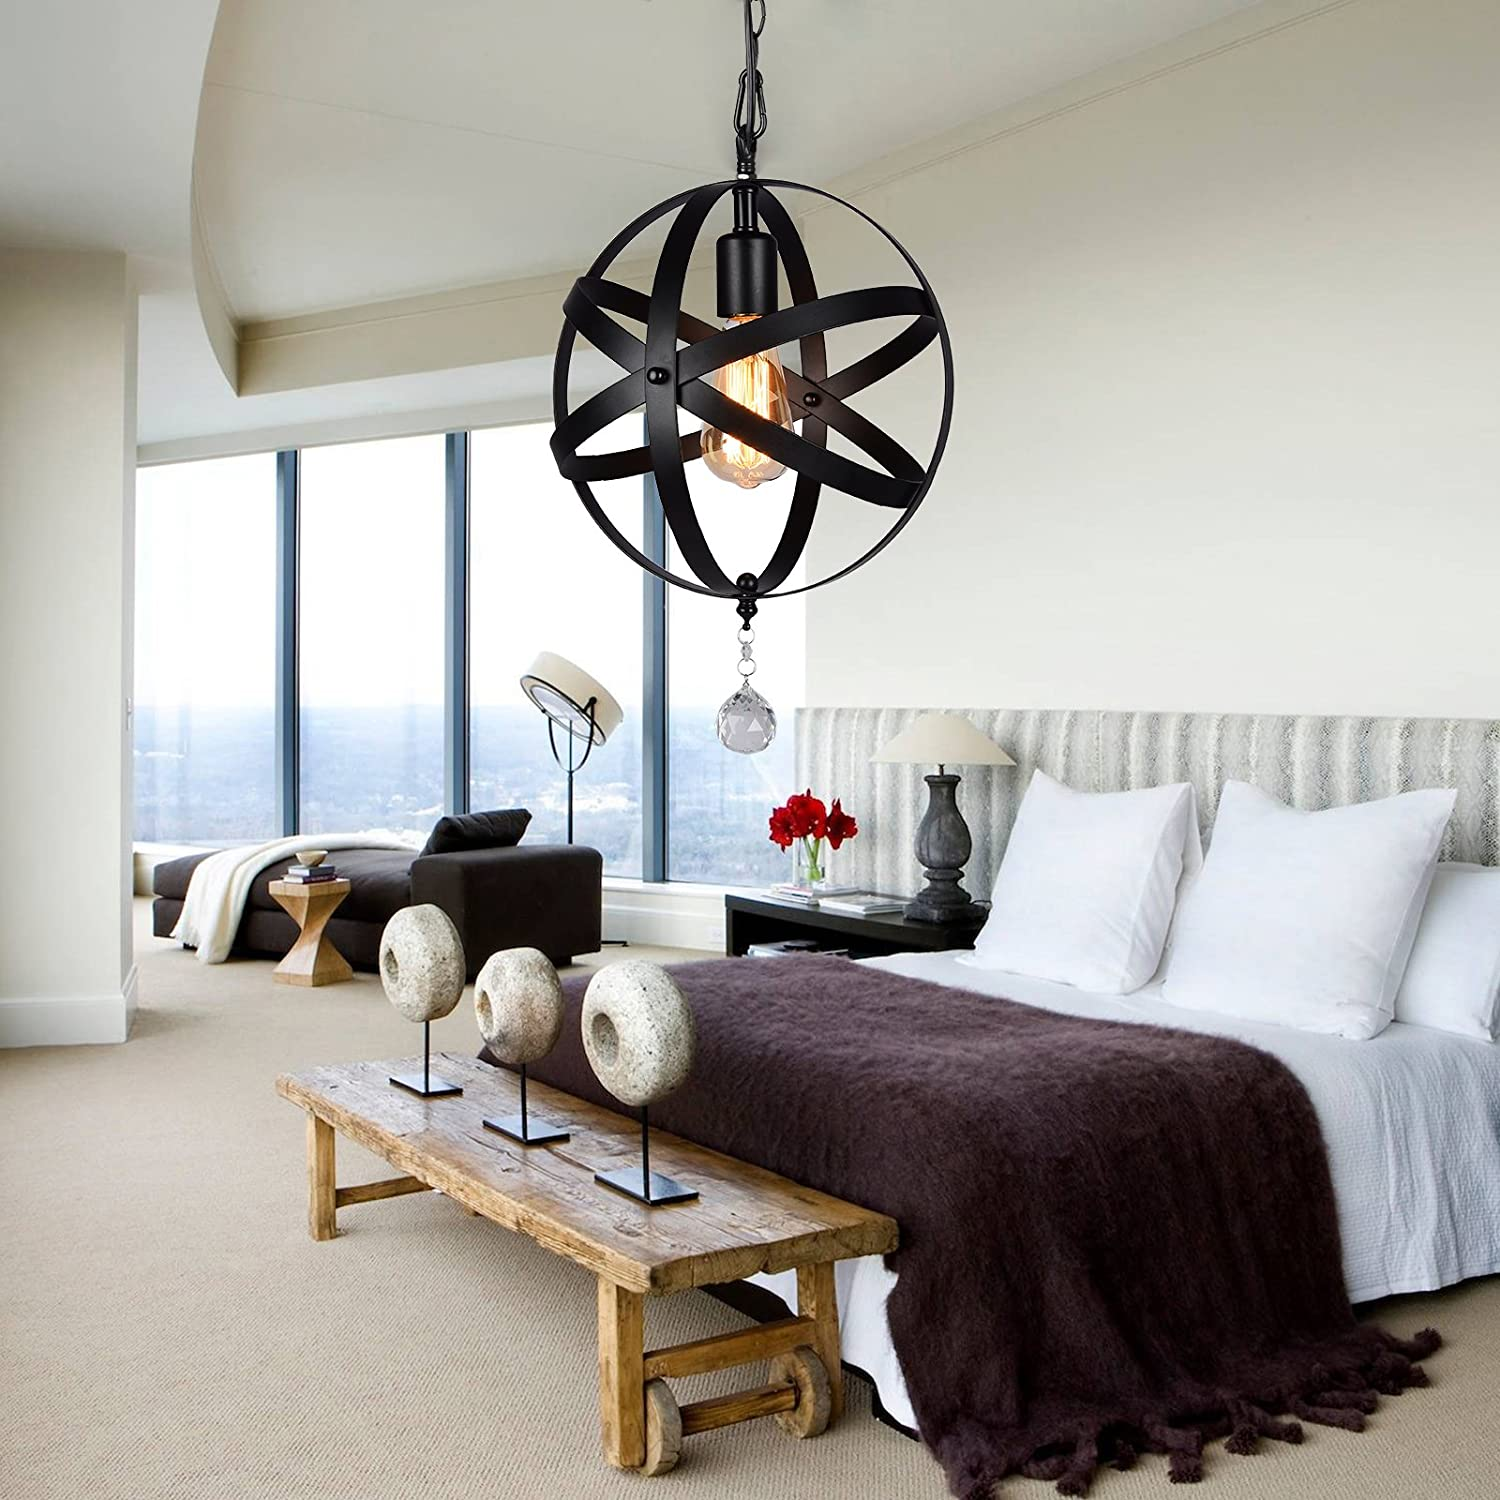 HMVPL Plug-in Industrial Globe Pendant Lights with 16.4ft Hanging Cord and On Off Dimmer Switch, Vintage Metal Spherical Lantern Chandelier Swag Ceiling Lighting Fixture for Kitchen Island Bedroom Bar